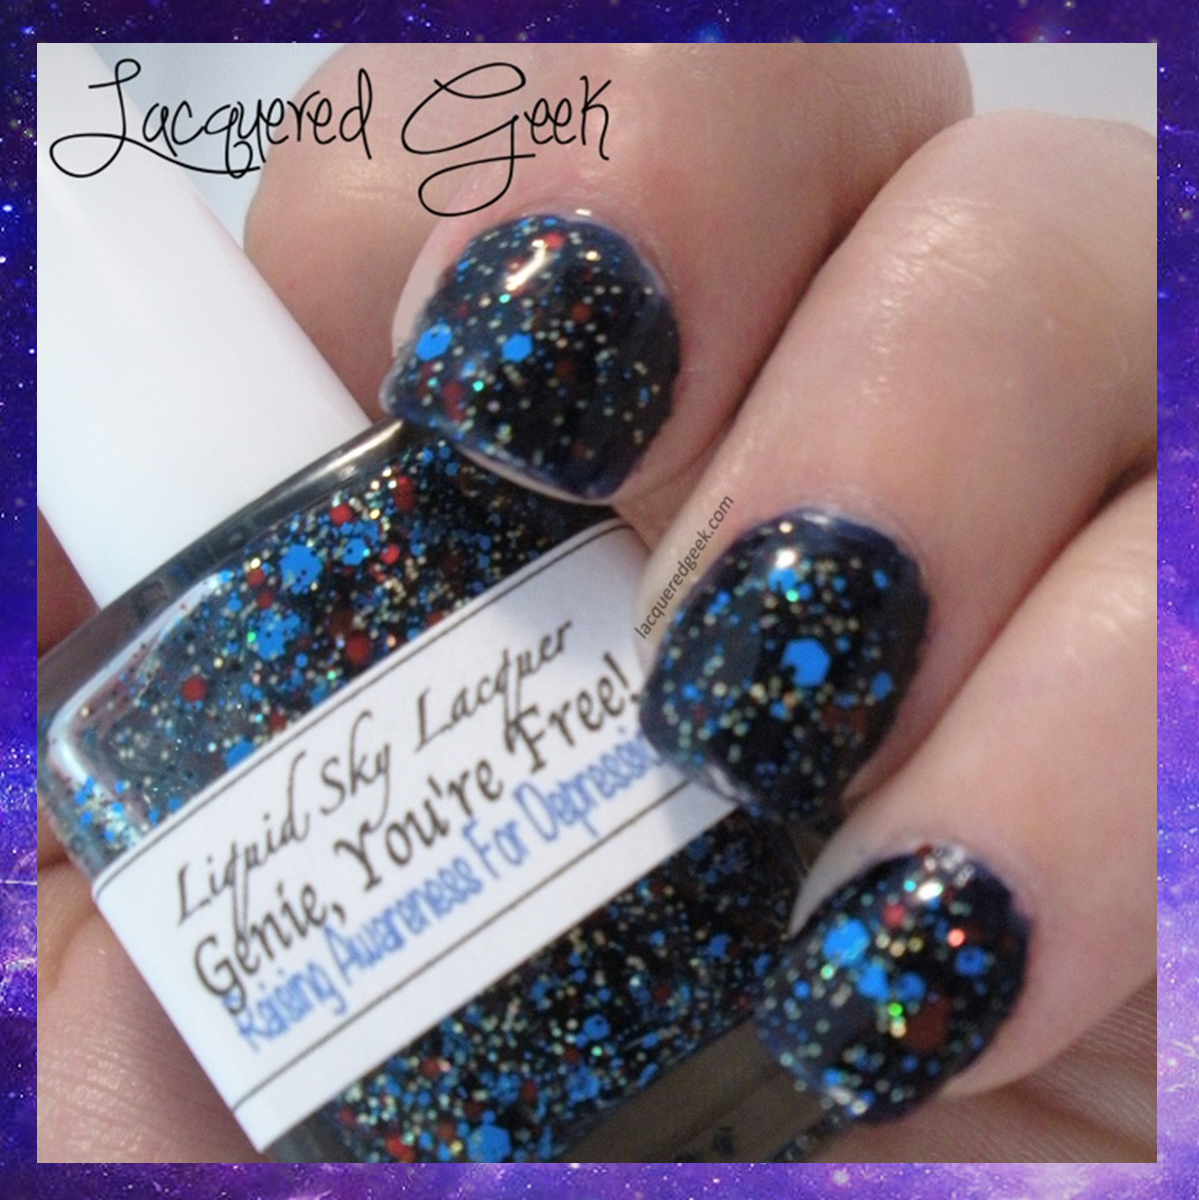 liquid sky lacquer genie you're free